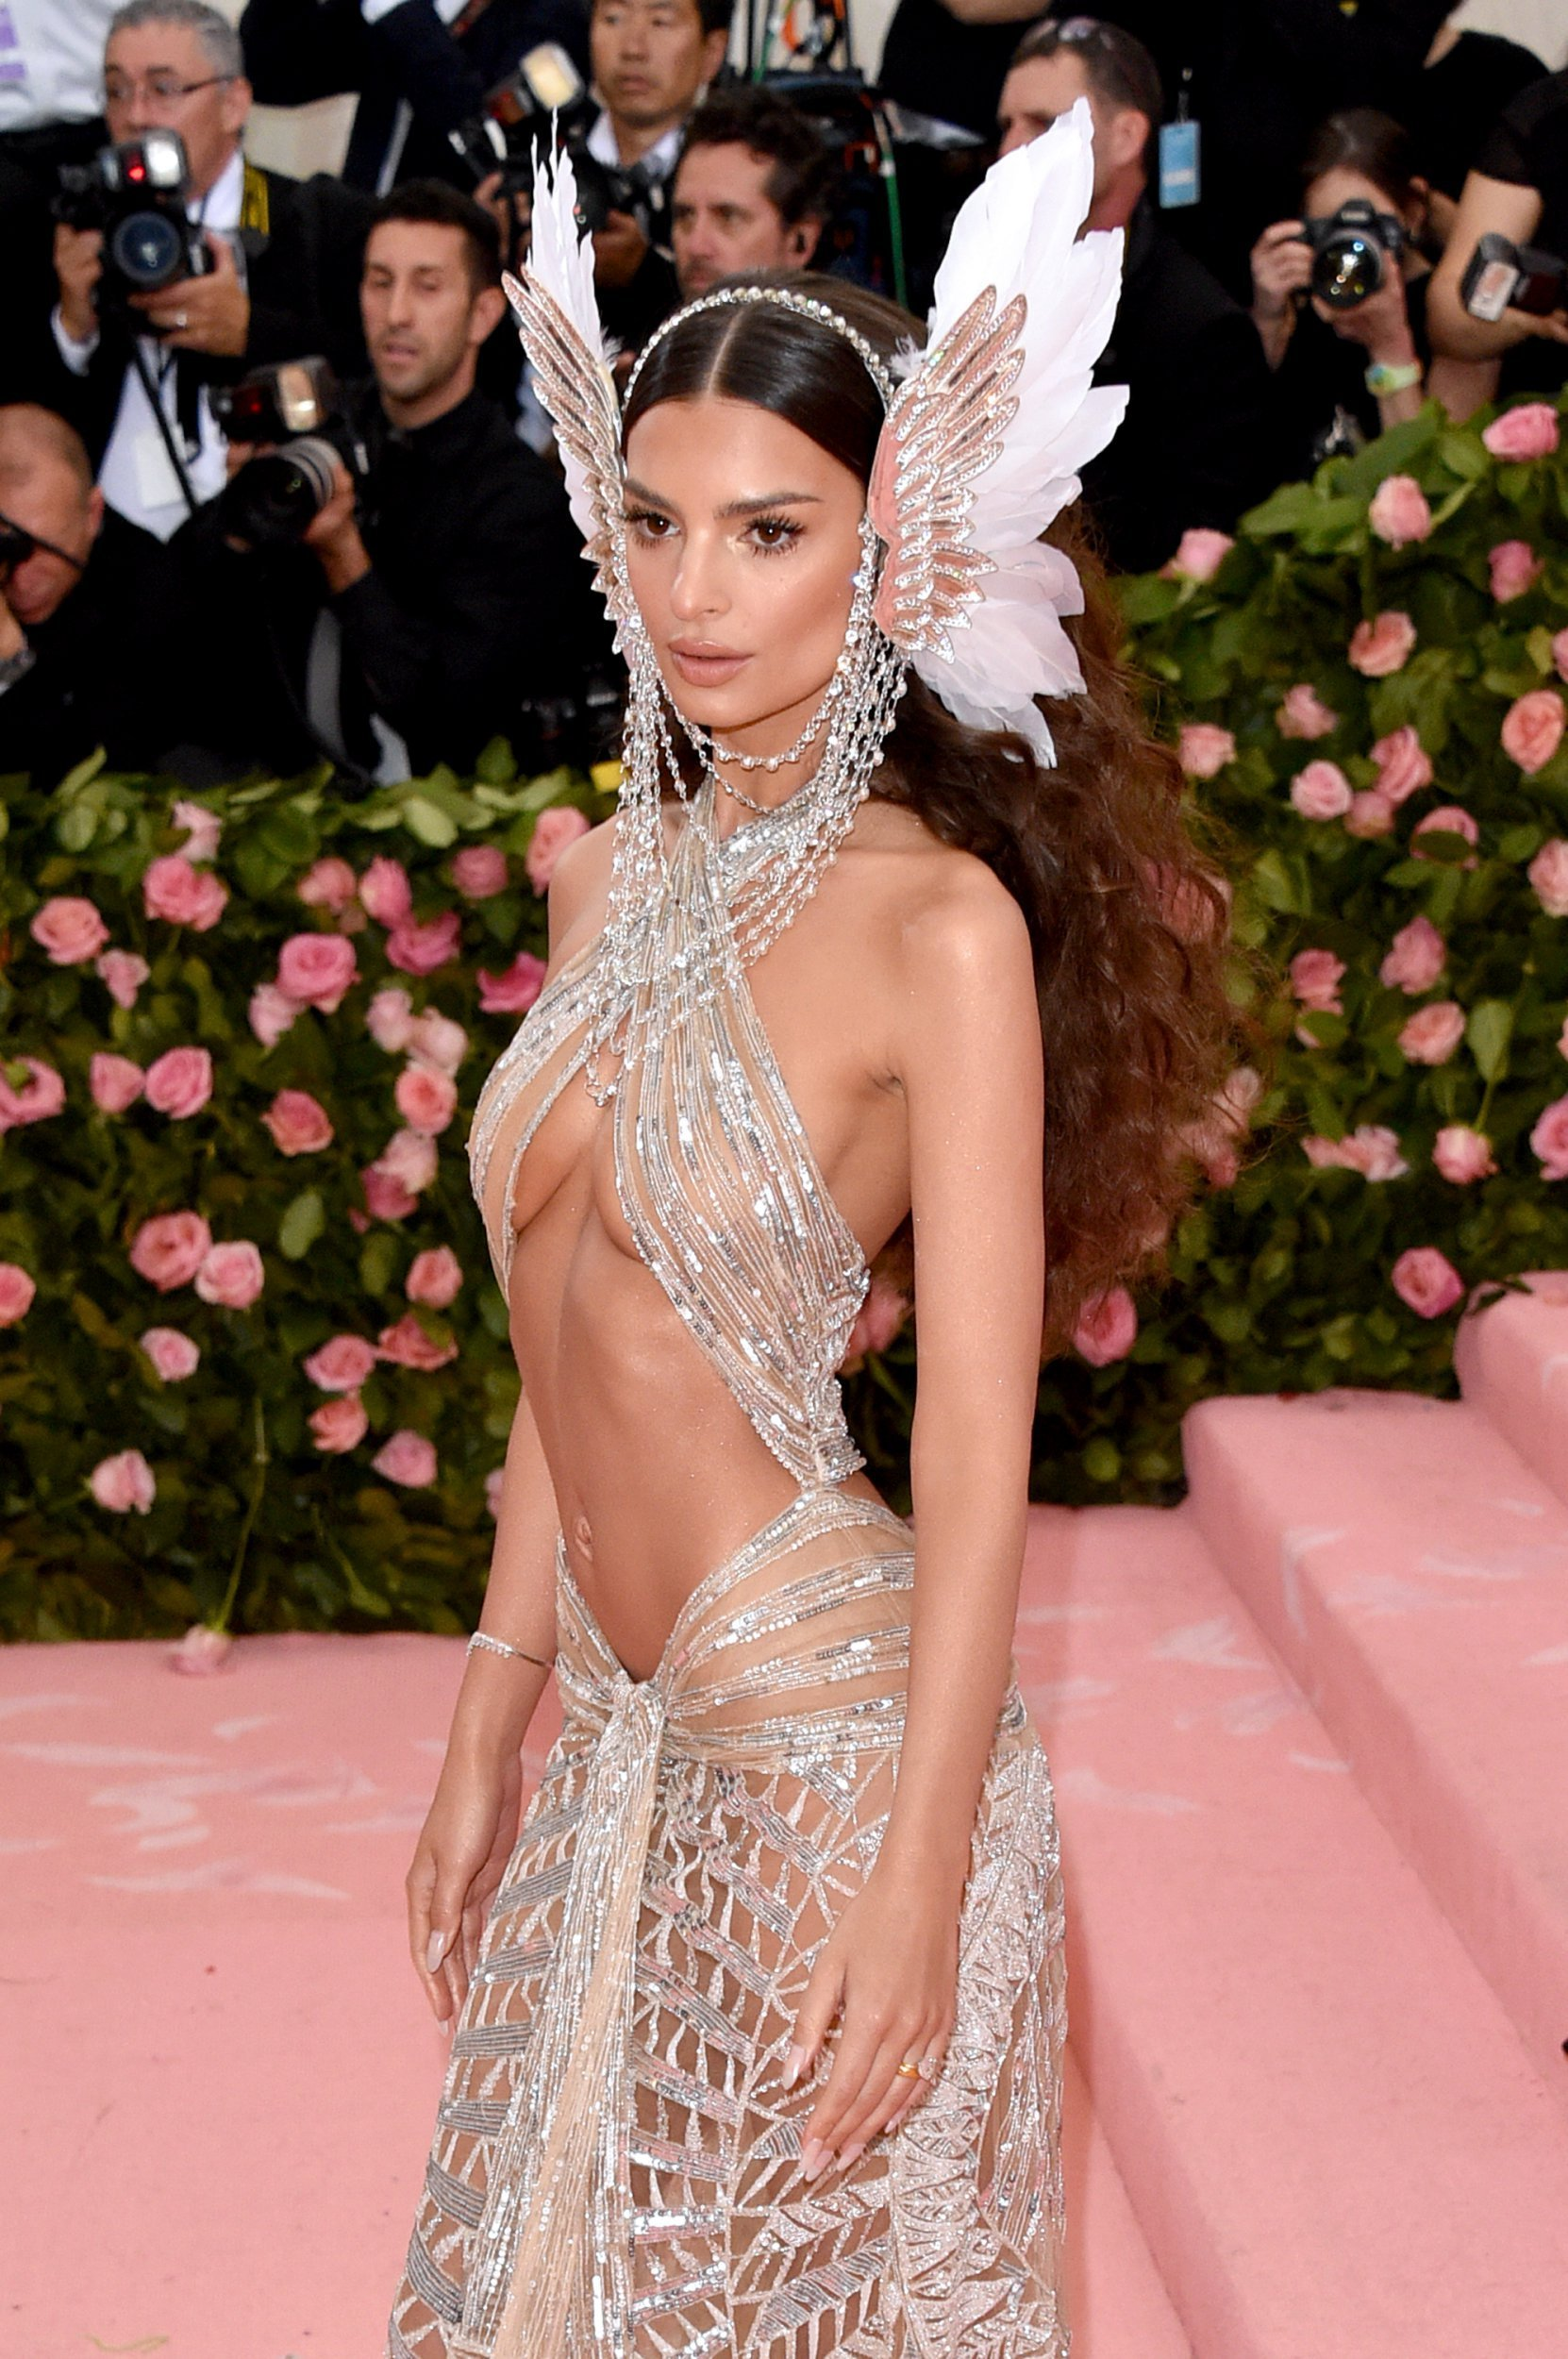 emily-ratajkowski-ditches-camp-met-gala-theme-for-risky-naked-dress.jpg